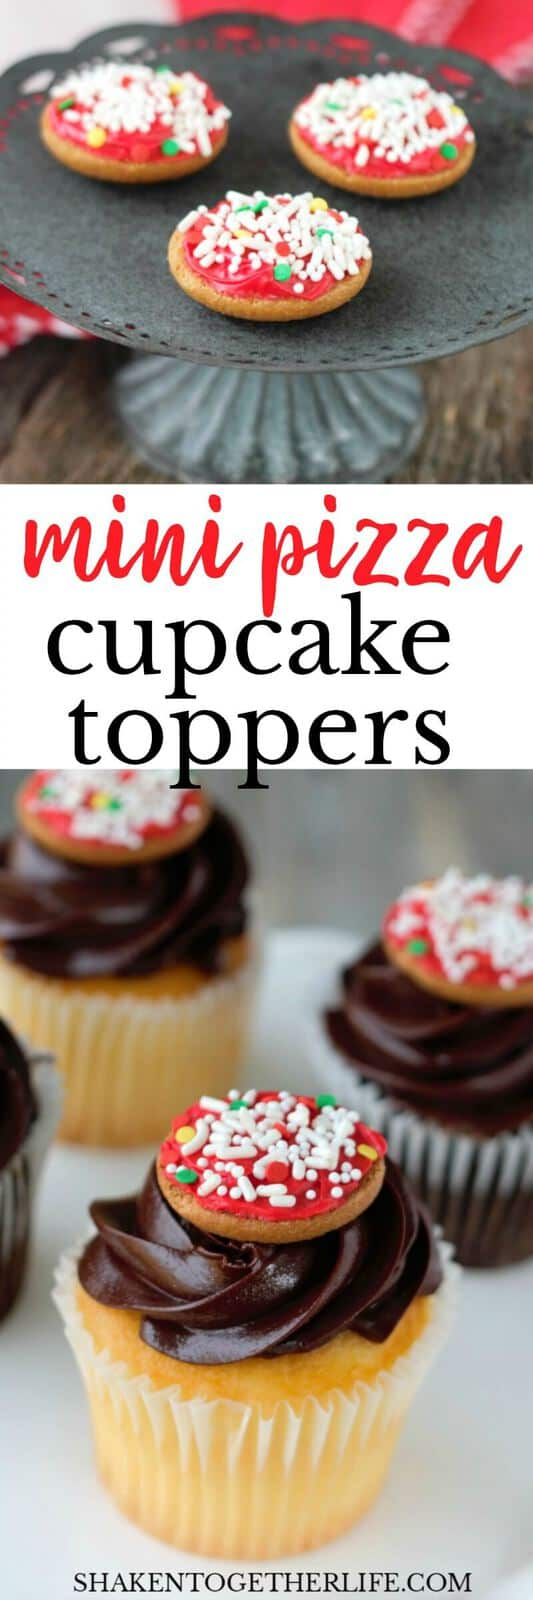 How to make Mini Pizza Cupcakes Toppers! This cute pizza themed dessert is perfect for a Pizza Party! They are no bake and SO easy to make!